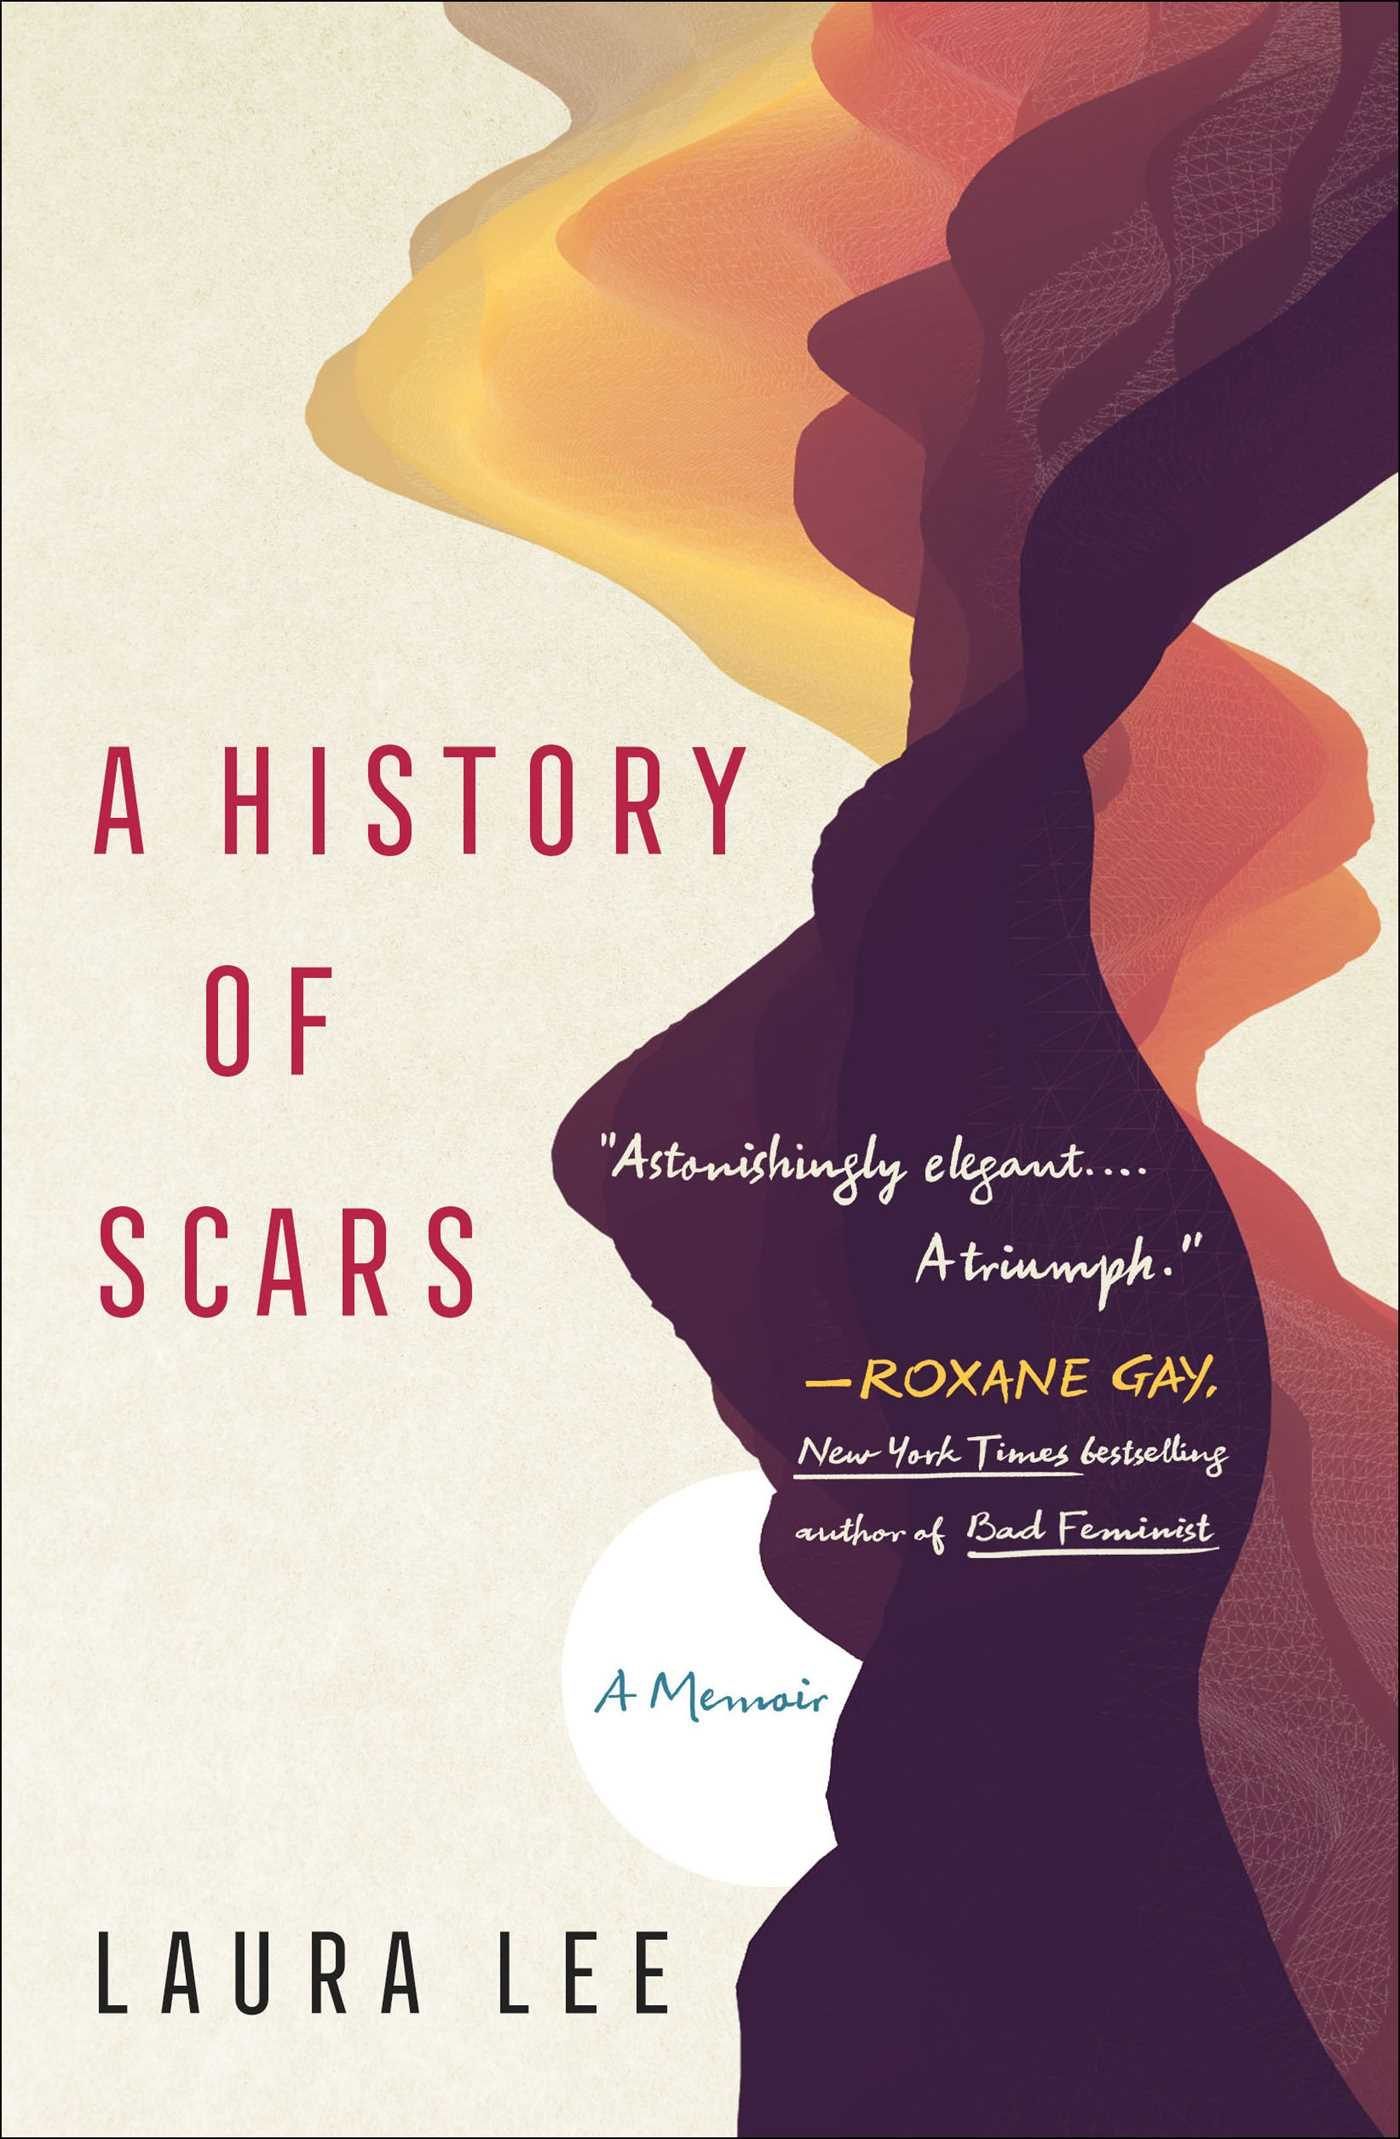 A History Of Scars By Laura Lee Release Date? 2021 Nonfiction Releases